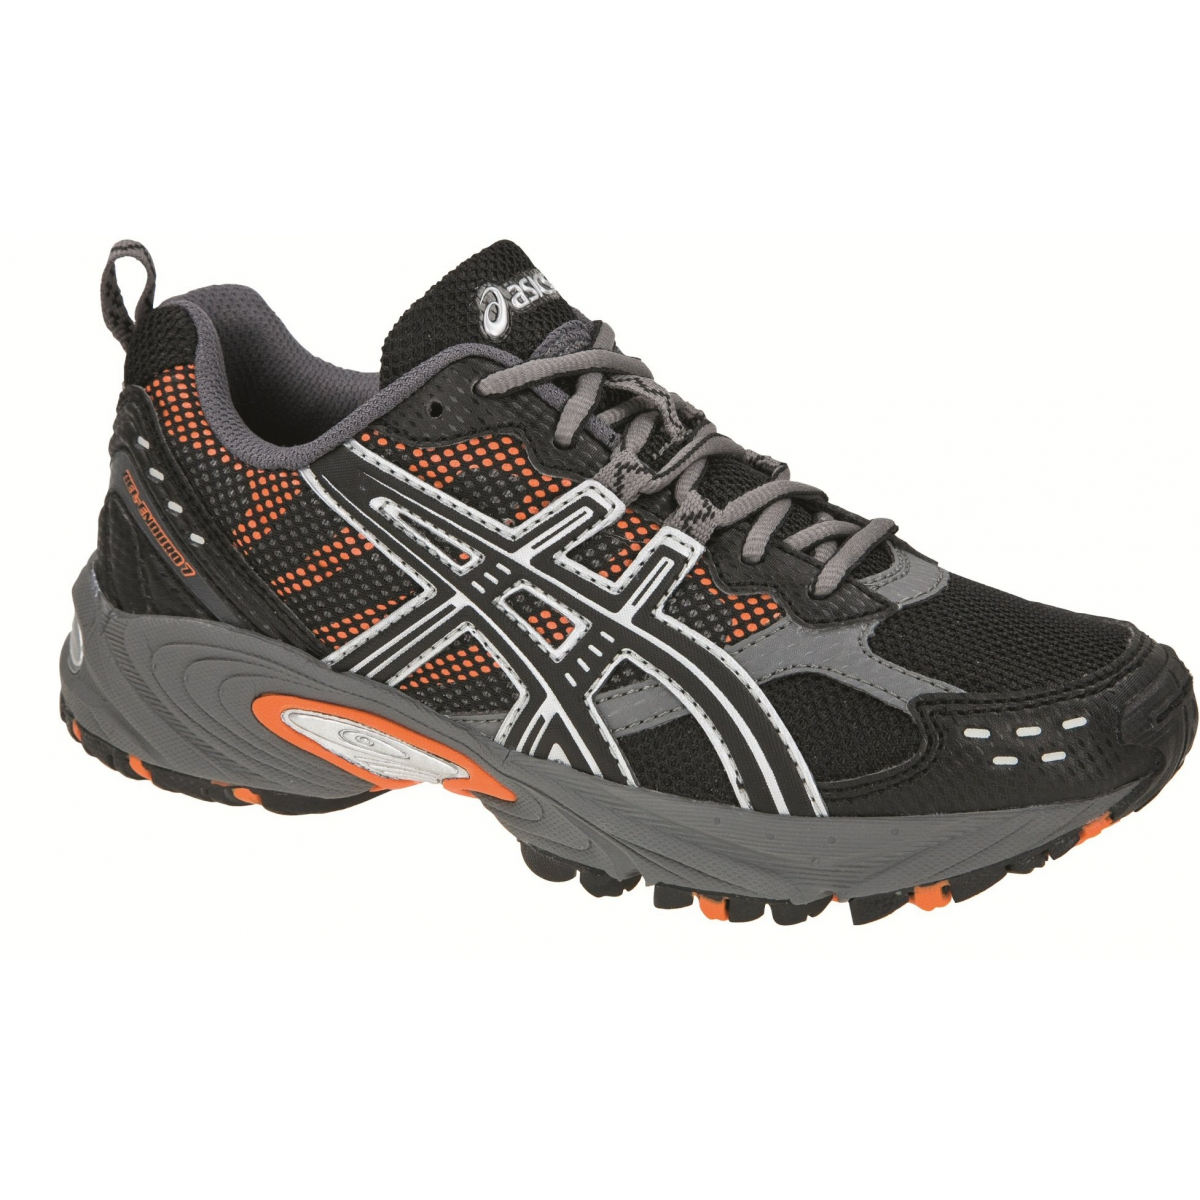 asics gel enduro 7 schwarz laufschuhe kinder gr e 35. Black Bedroom Furniture Sets. Home Design Ideas